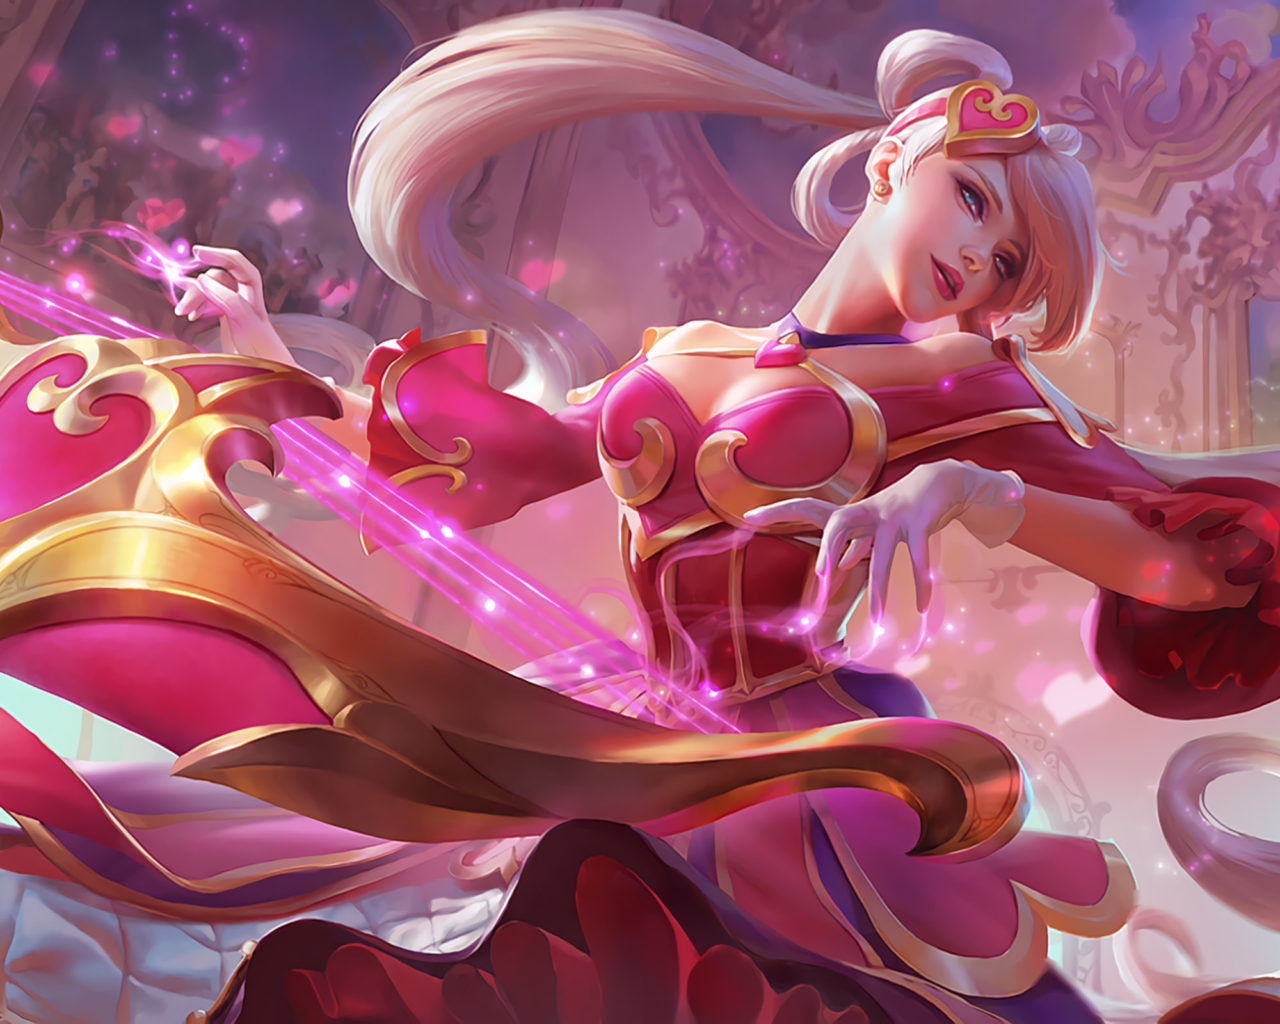 New Girl Hd Wallpaper Download Video Game League Of Legends Sweetheart Sona Orianna